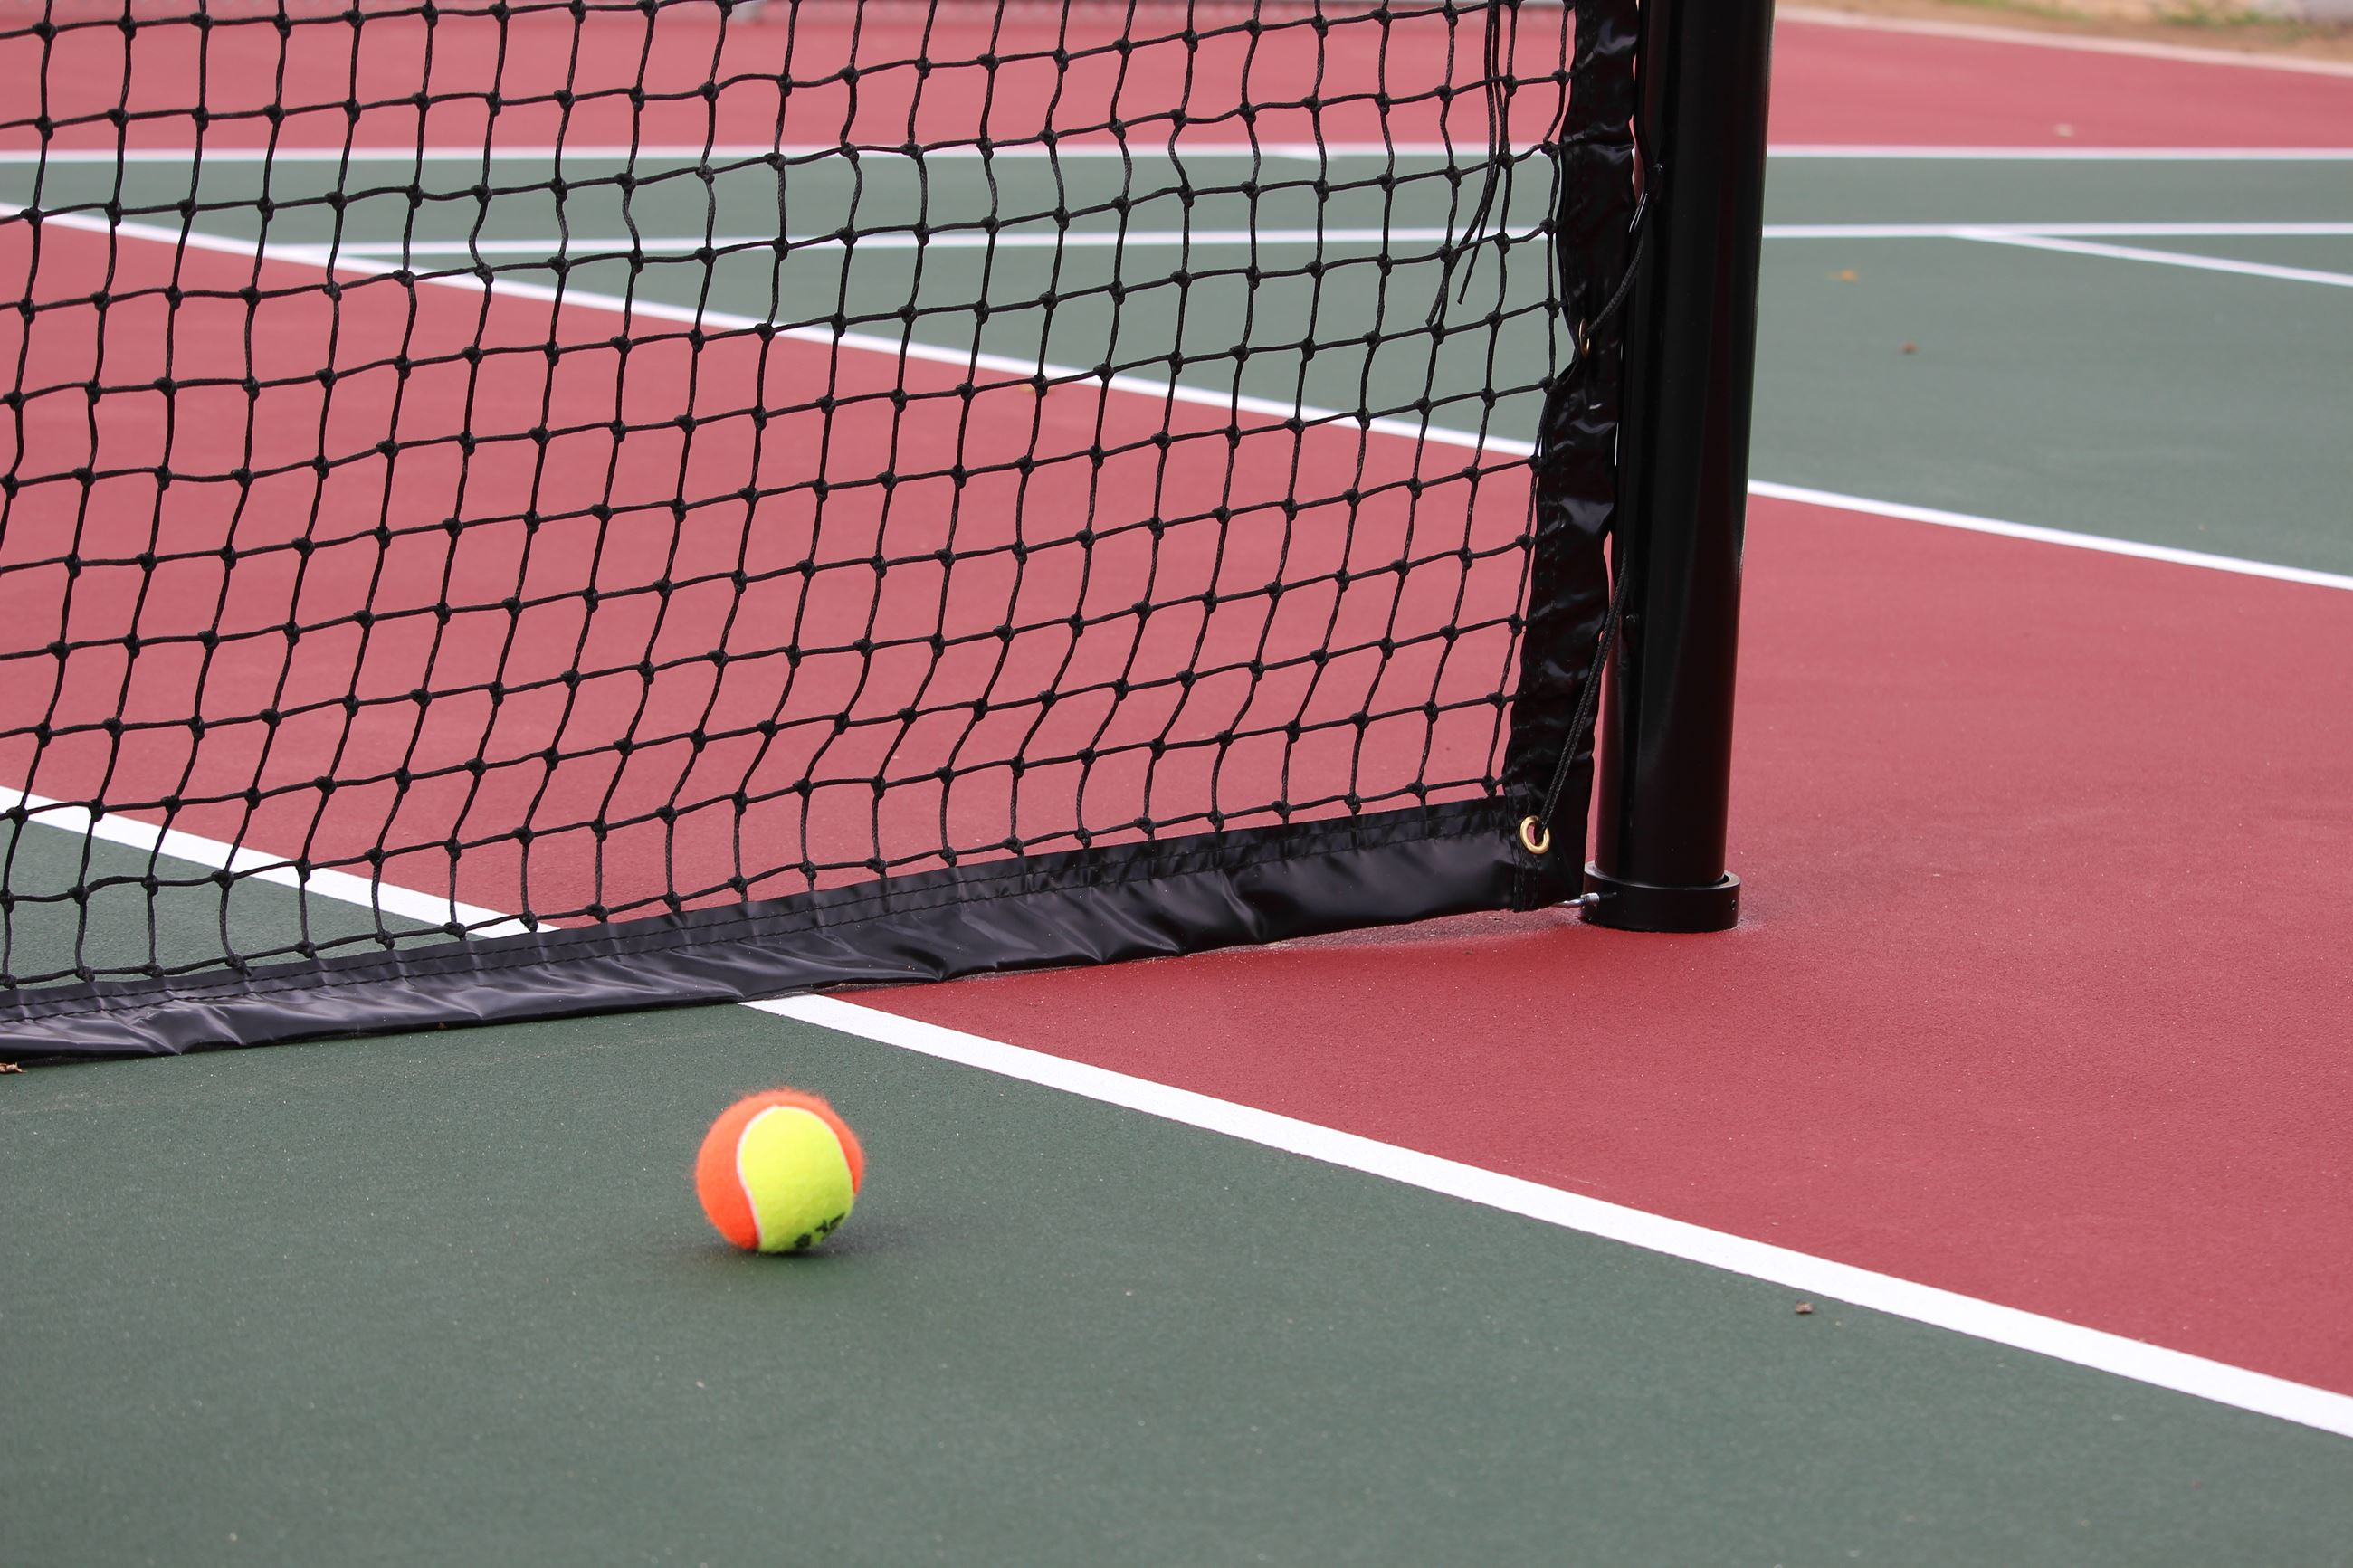 A tennis ball sitting on the court next to the net